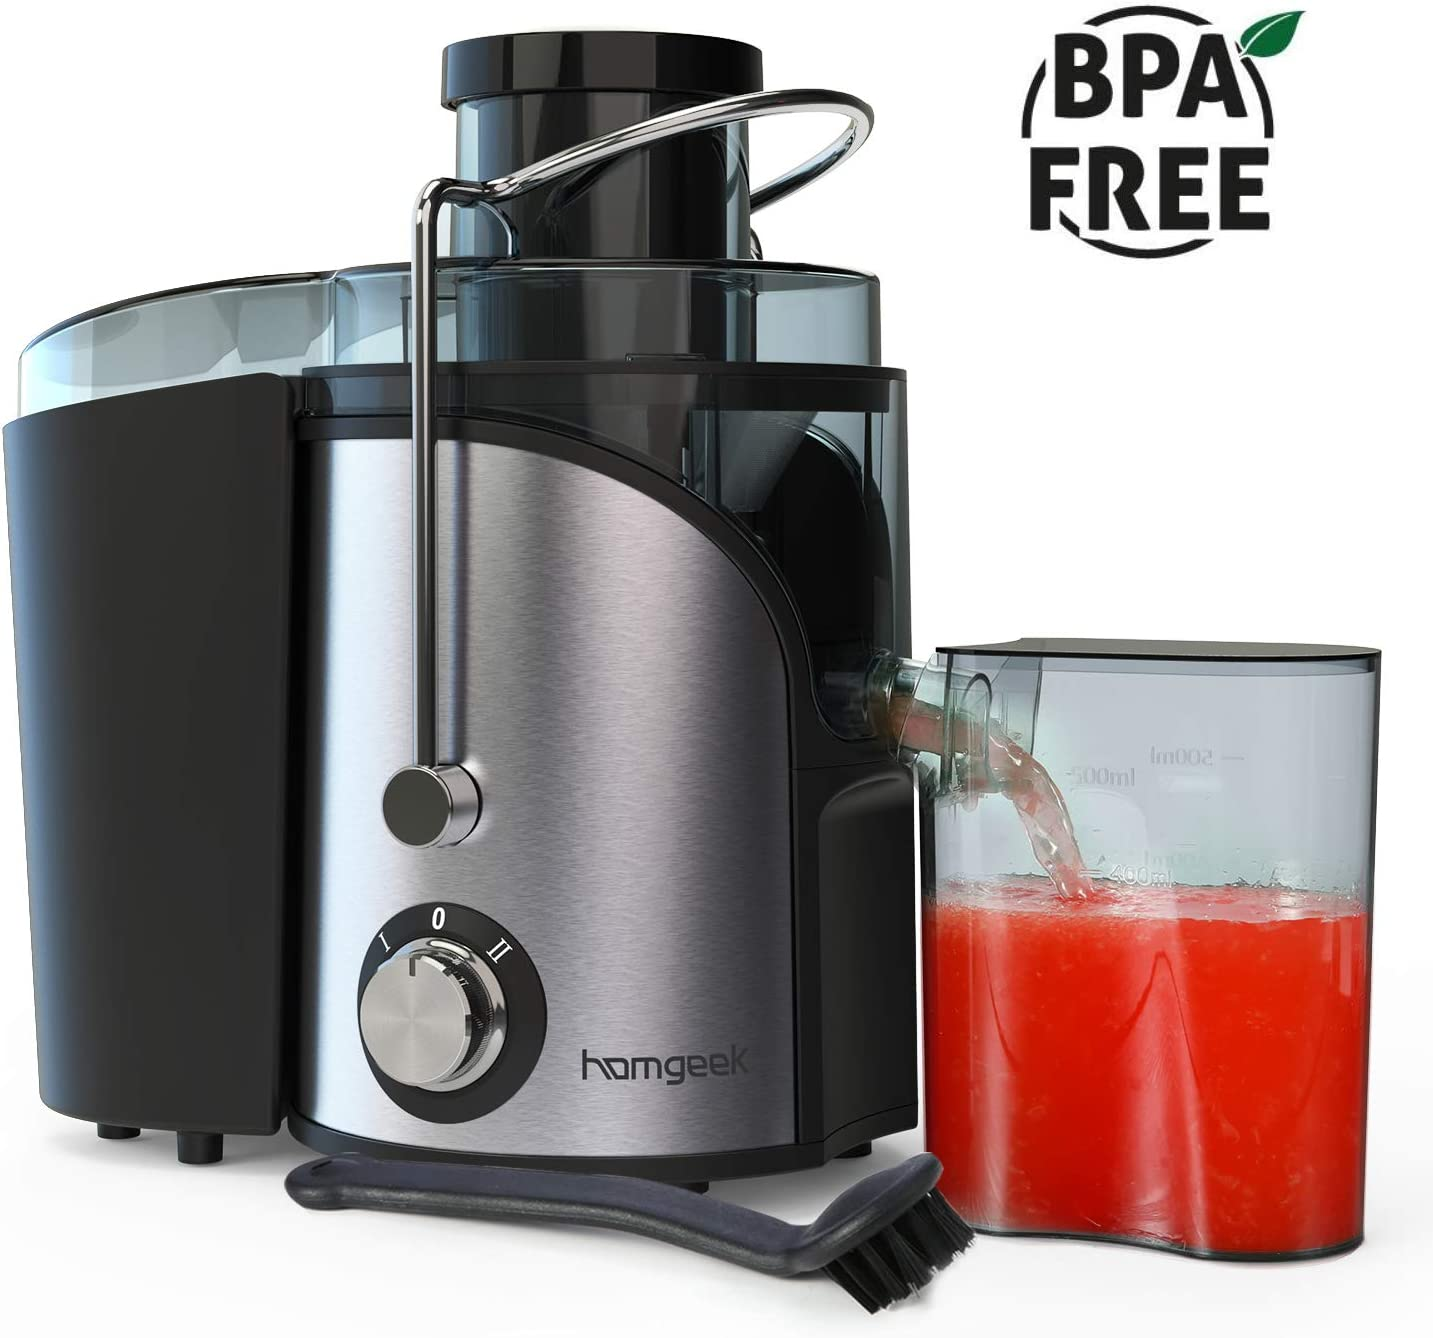 Juicer, Homgeek vegetable Juicer Machines, Dual Speed small Juicer 400W with Anti-drip Kit Design, Easy to Clean, Stainless Steel, BPA-FREE